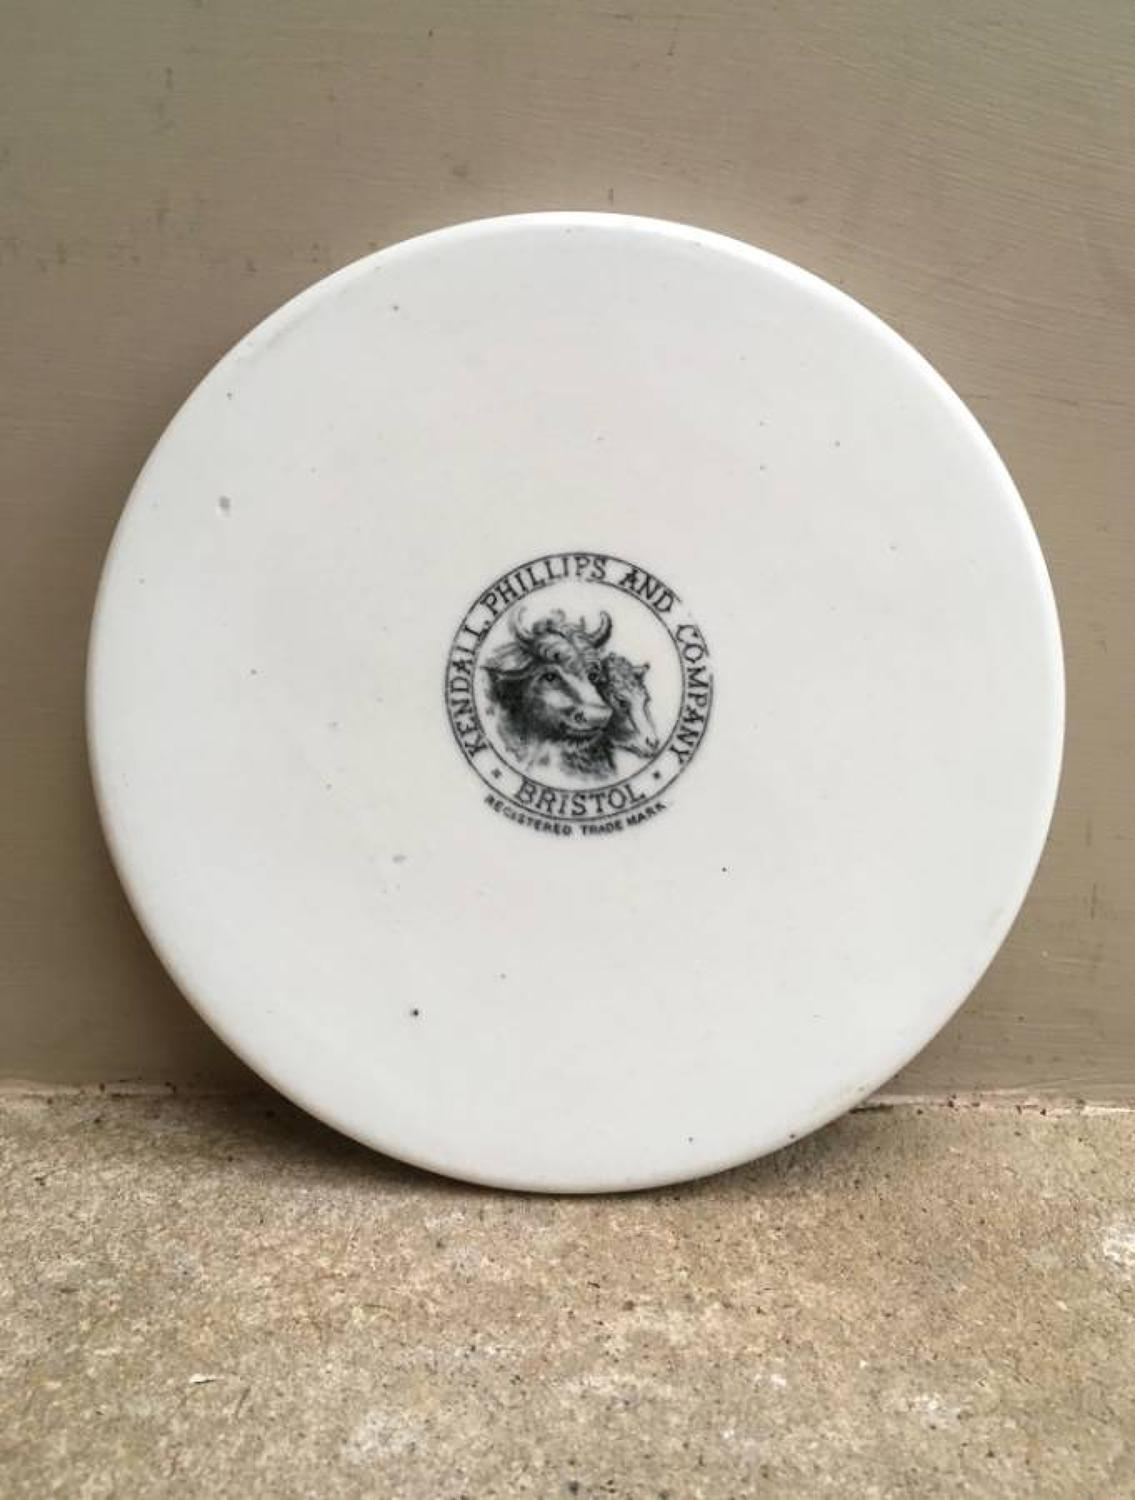 Rare Late Victorian Scale Plate - Kendall Phillips and Company - Cow &